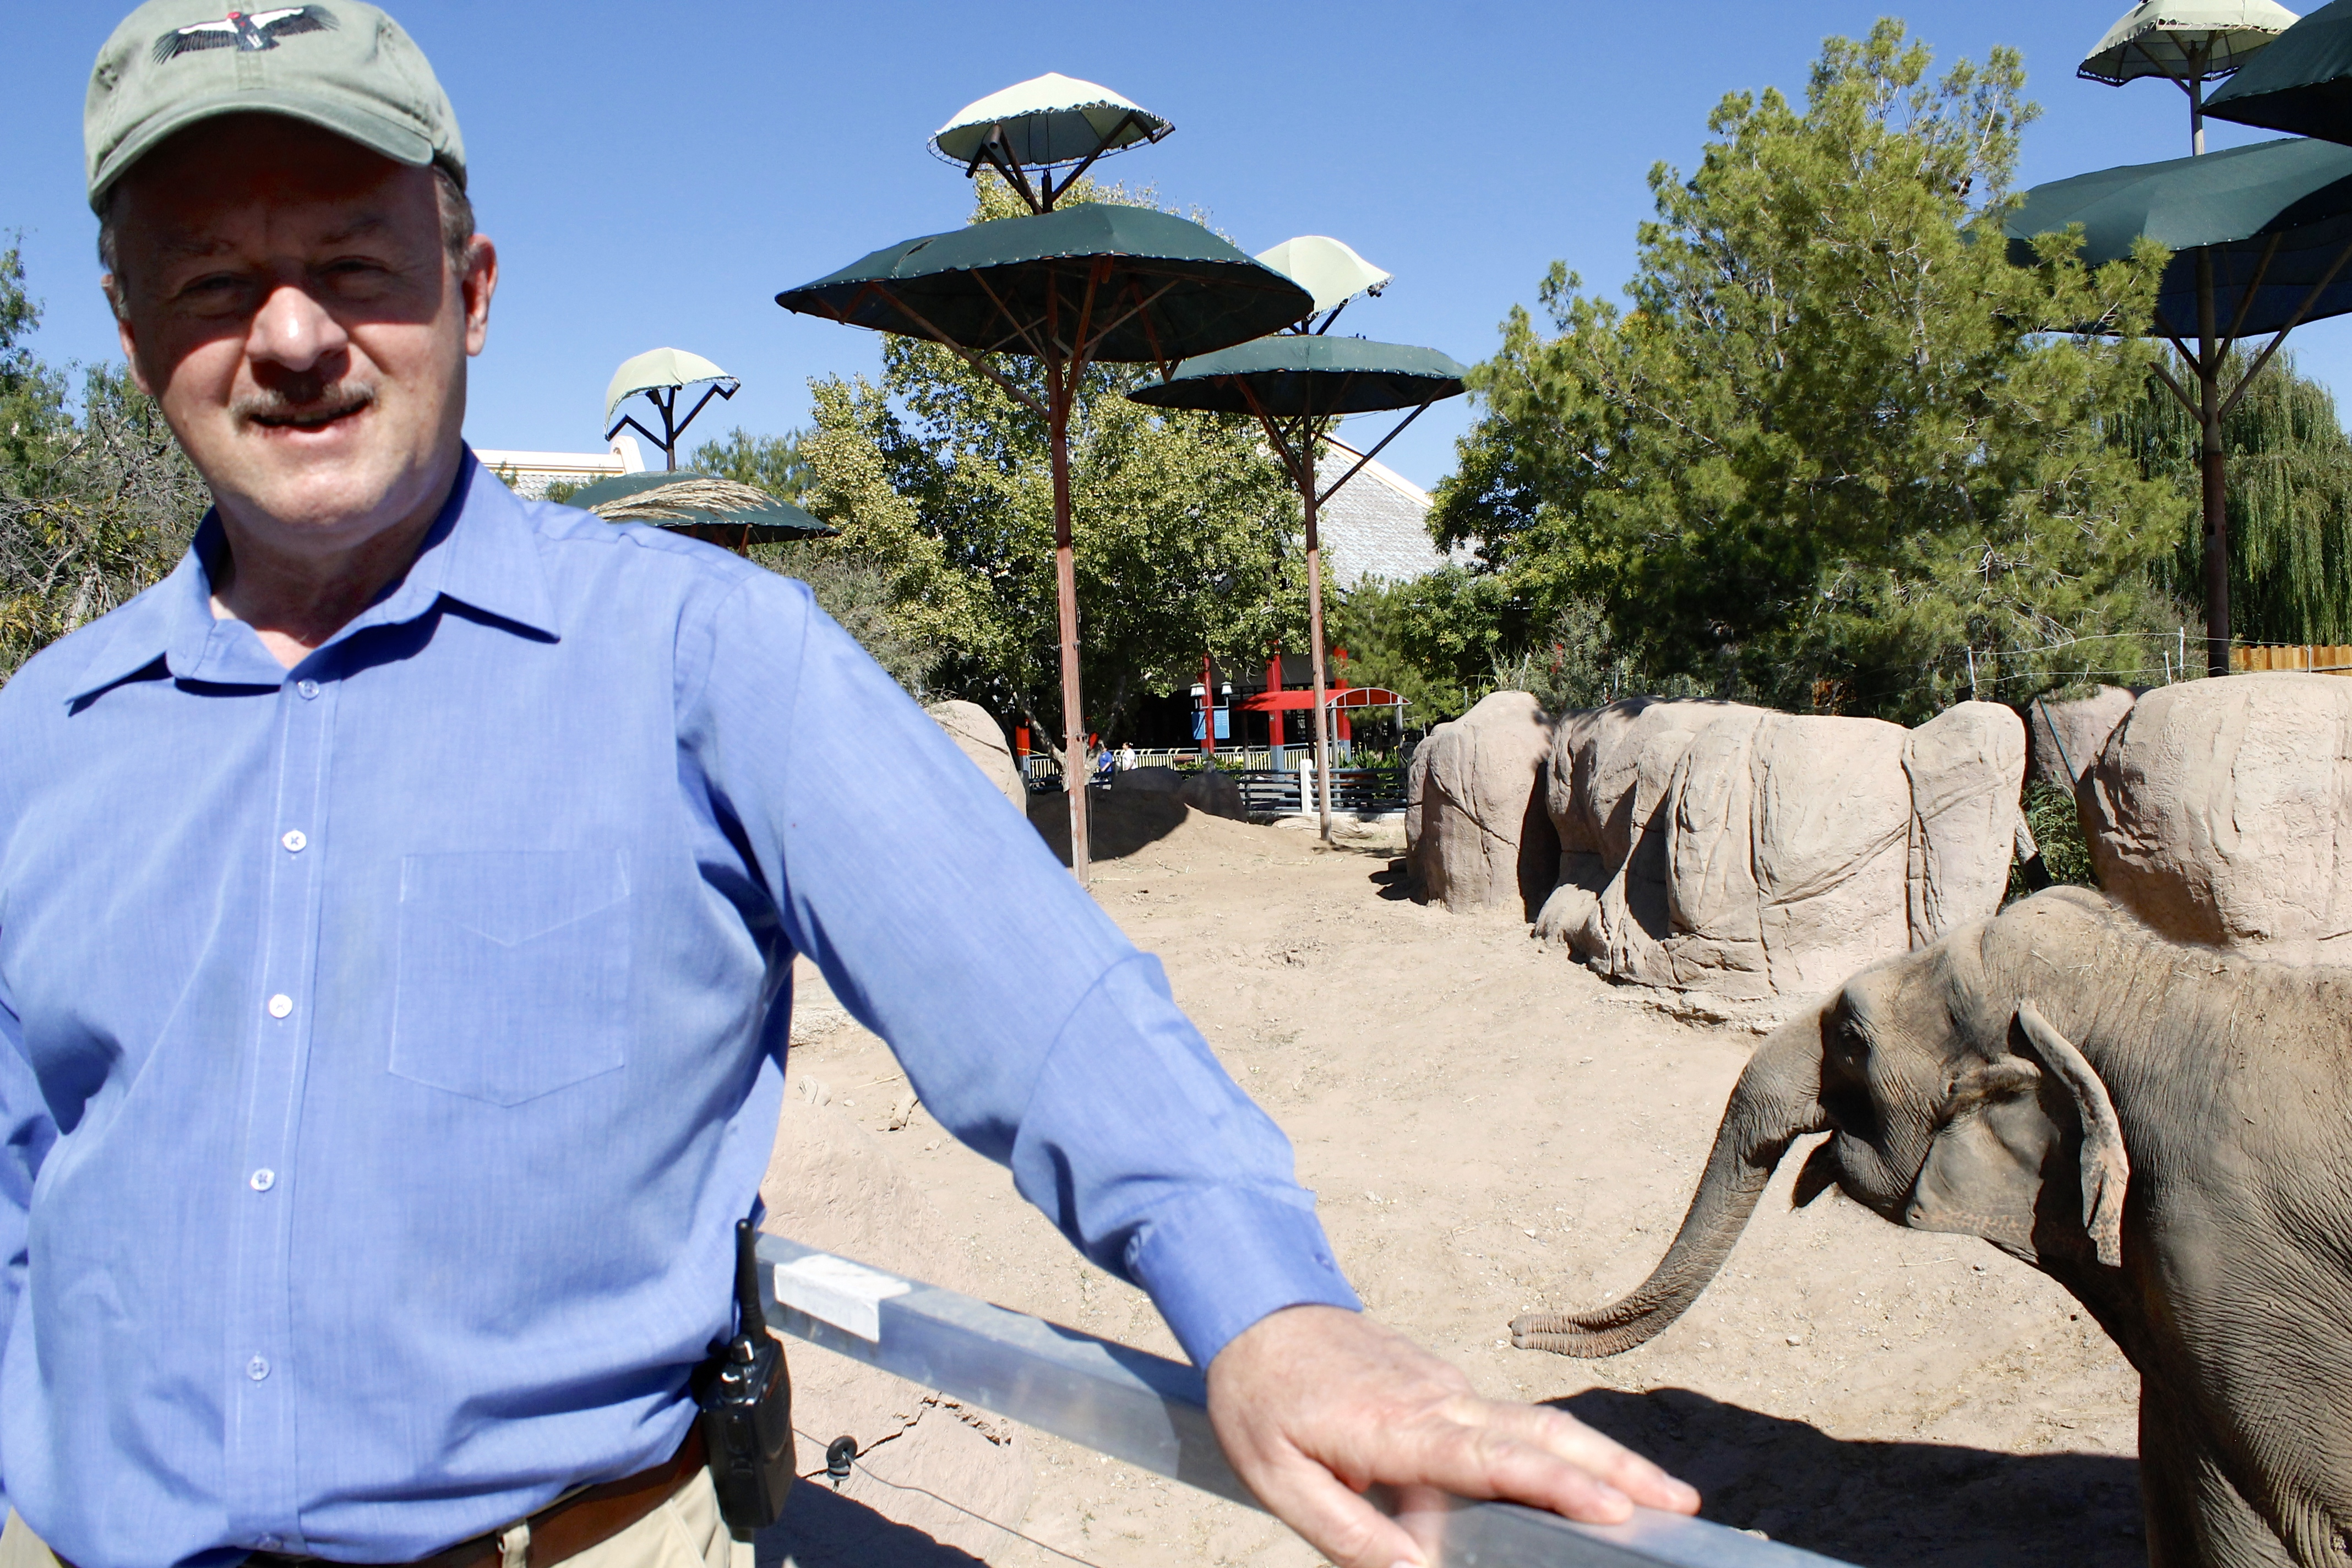 As the El Paso Zoo's education curator, Rick LoBello, 60, tries to bring together young visitors and animals. (Lucia Quinonez / Borderzine.com)